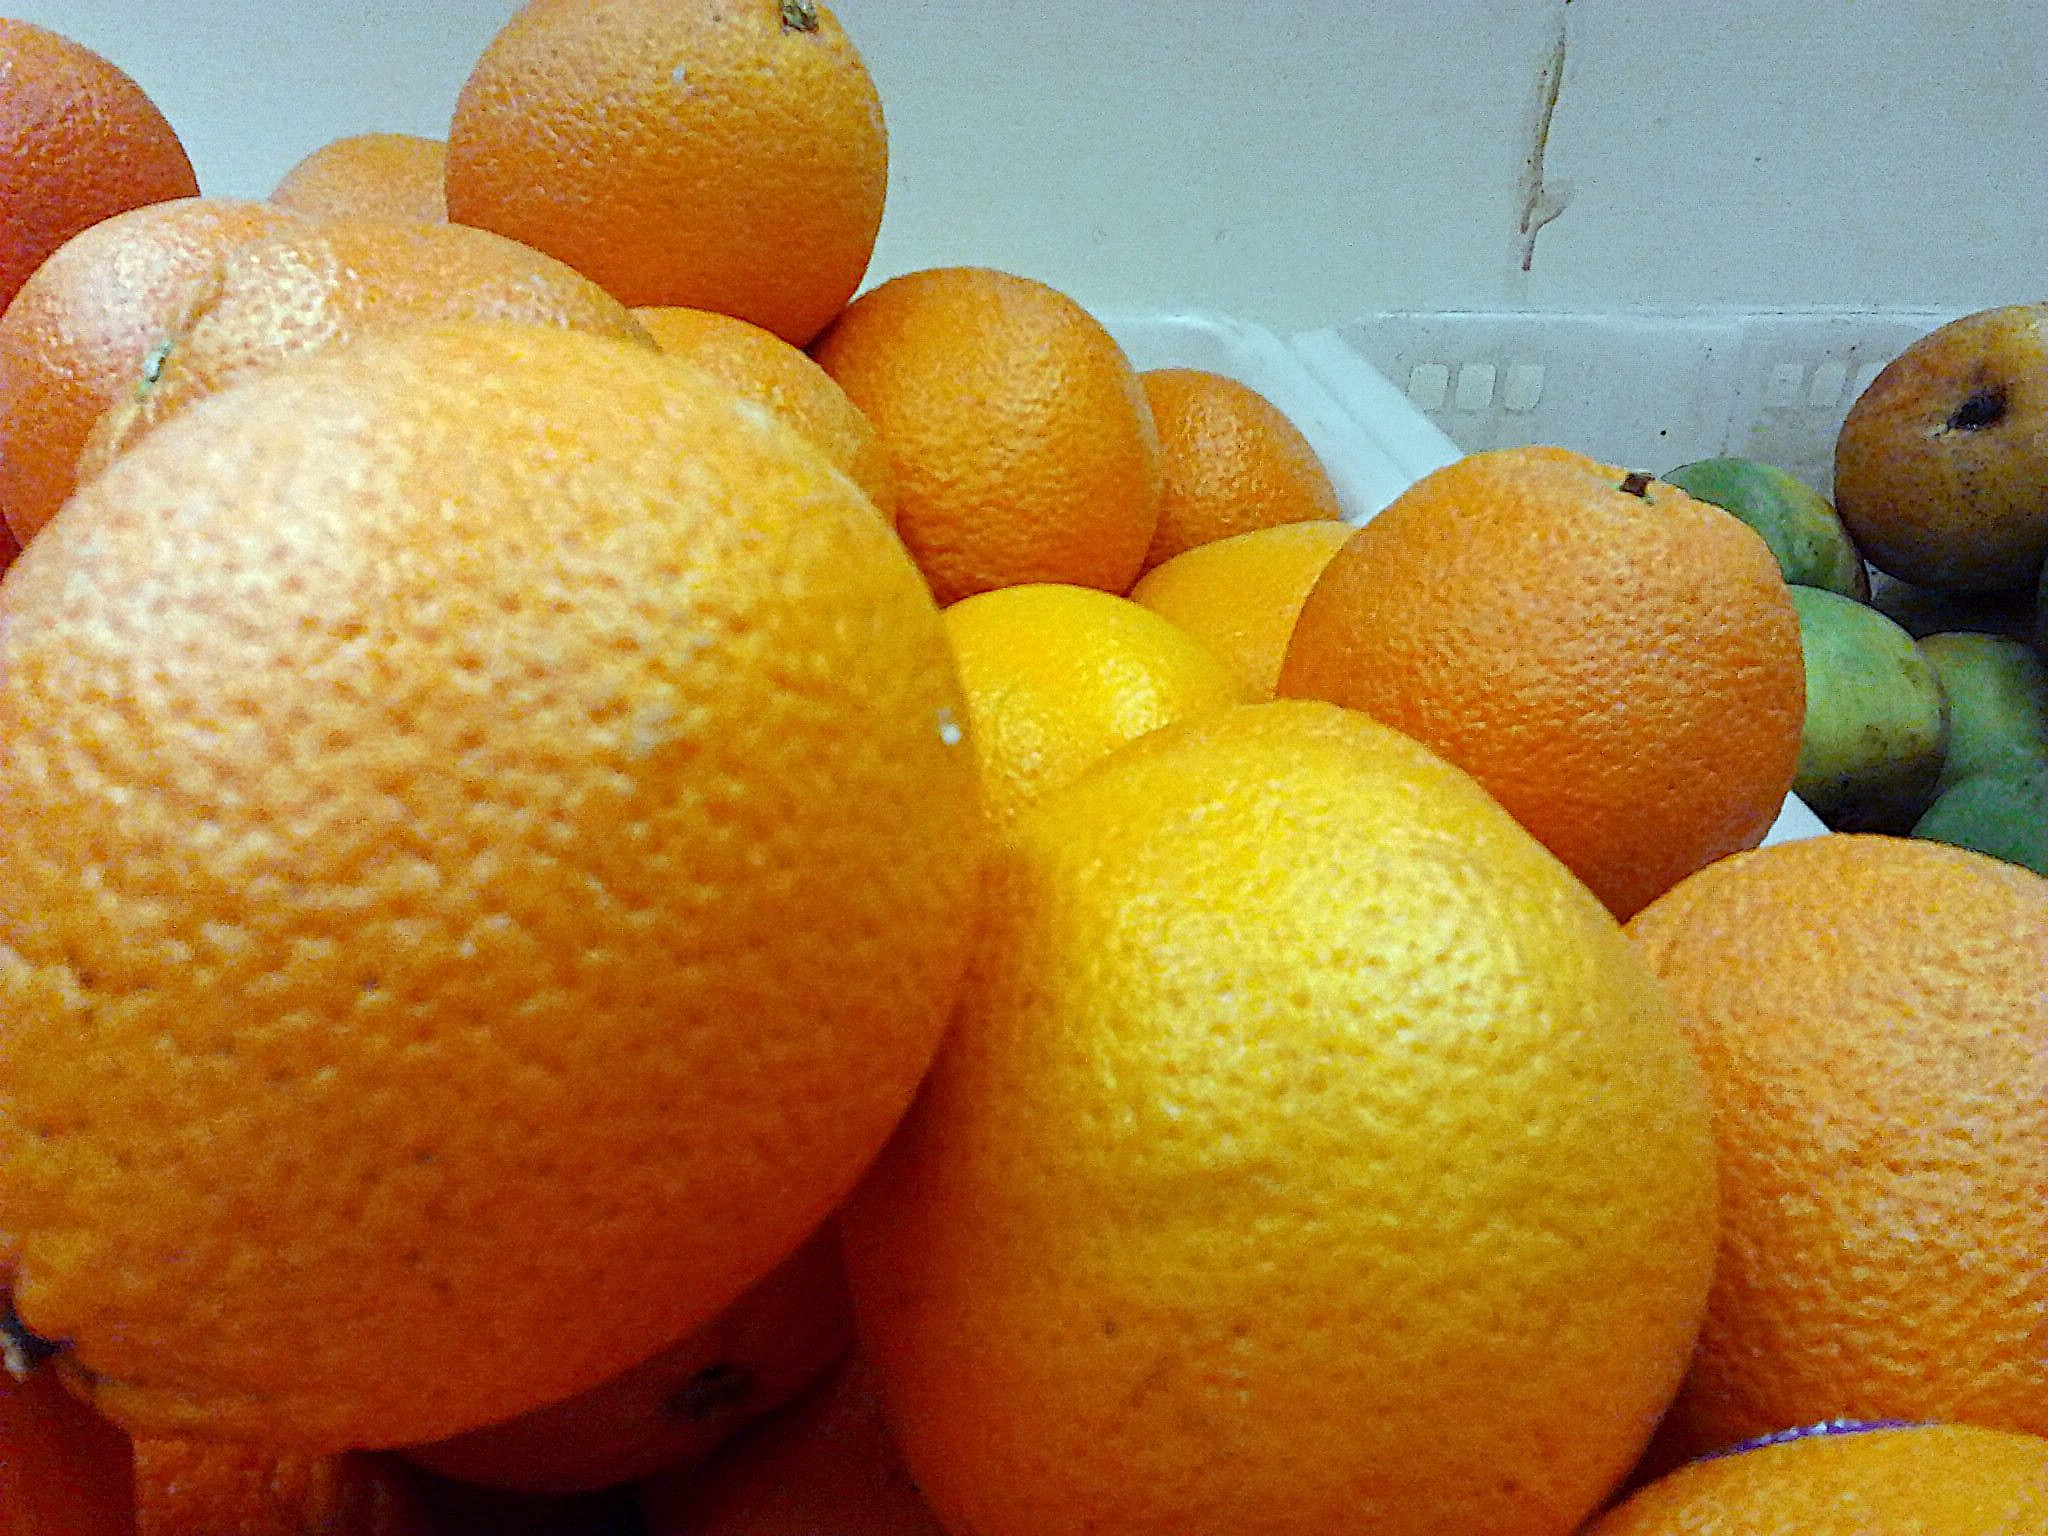 Other varieties of common oranges